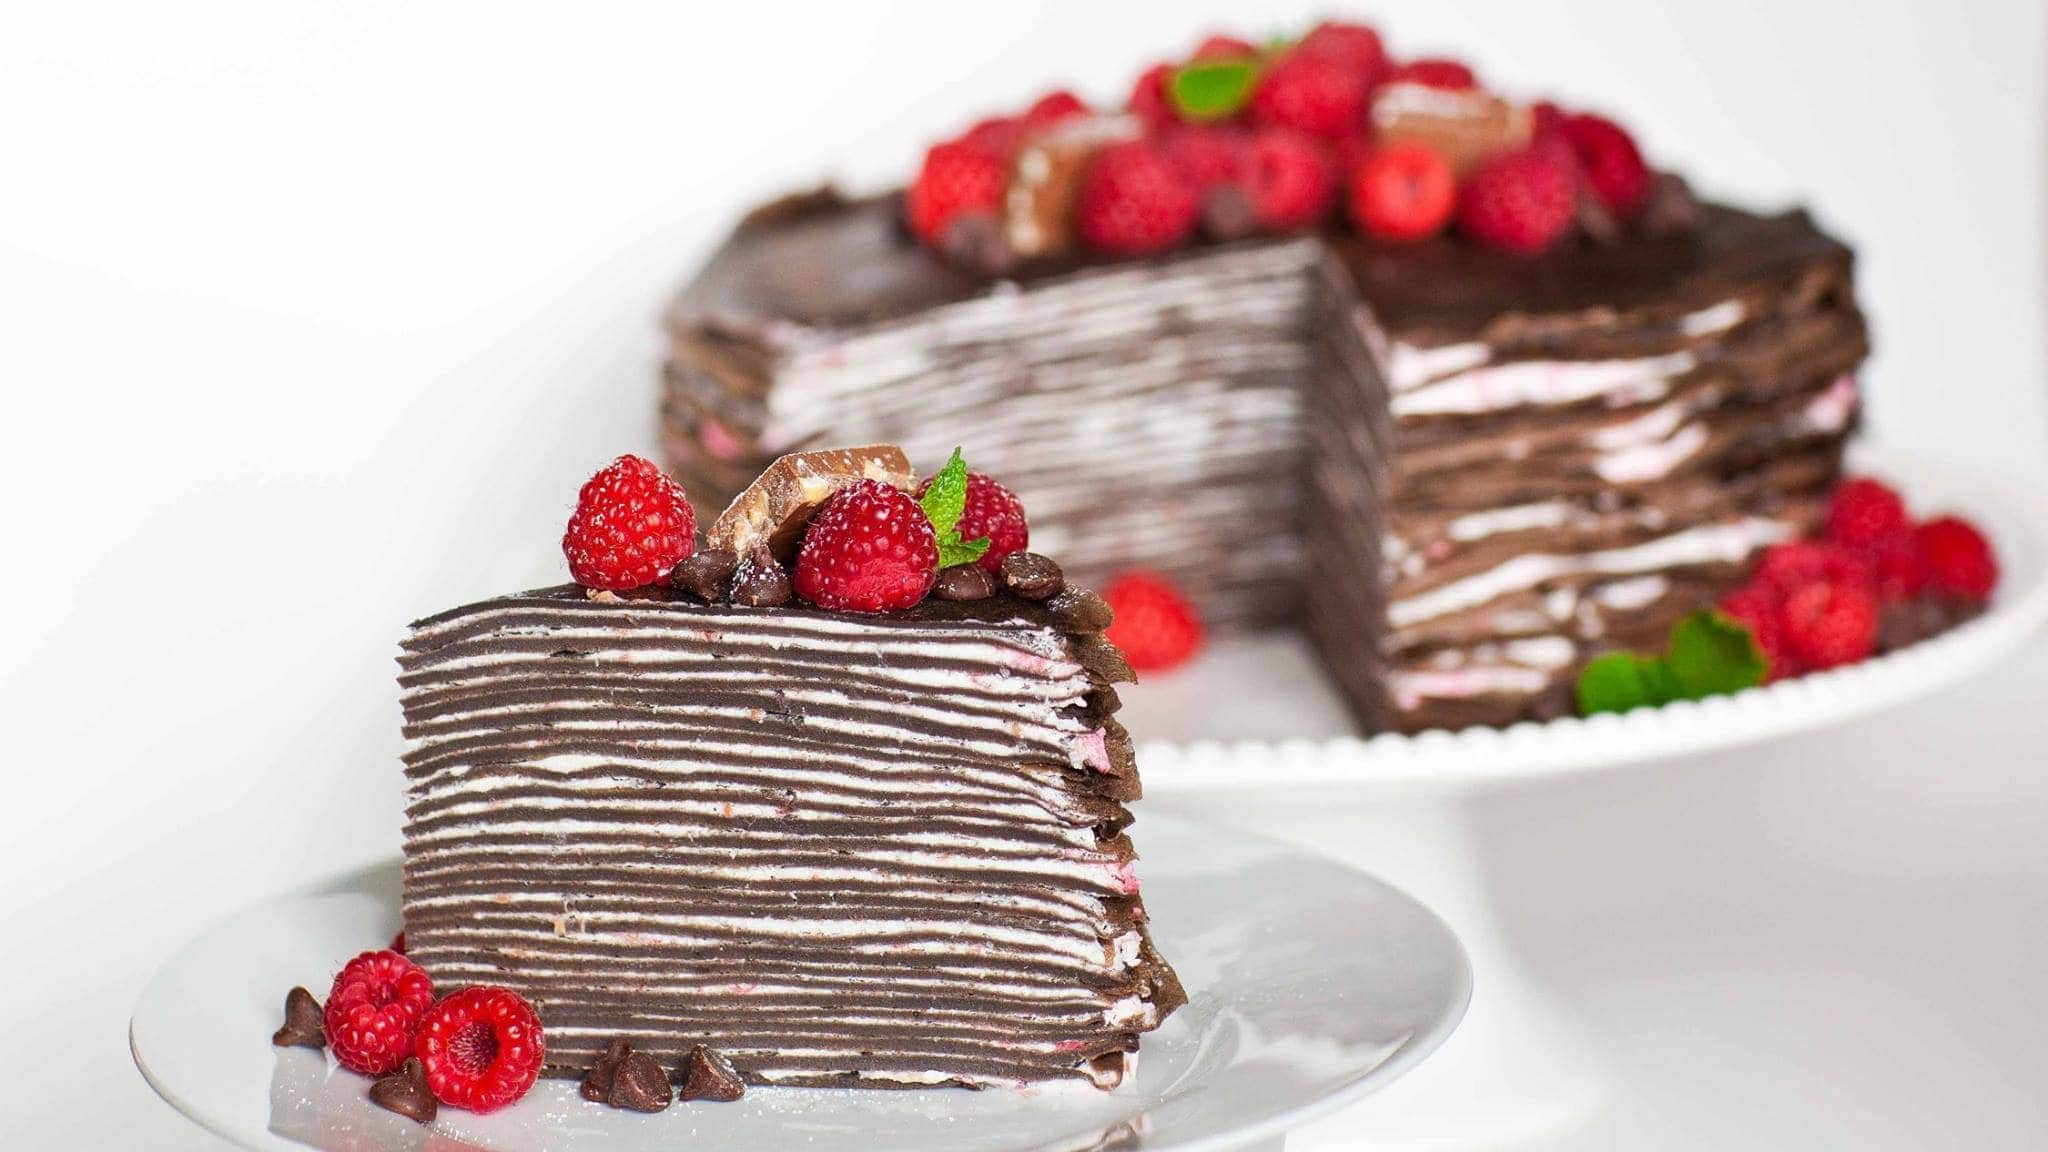 https://www.ilclubdellericette.it/wp-content/uploads/2017/01/torta-di-crepes-dolci.jpg